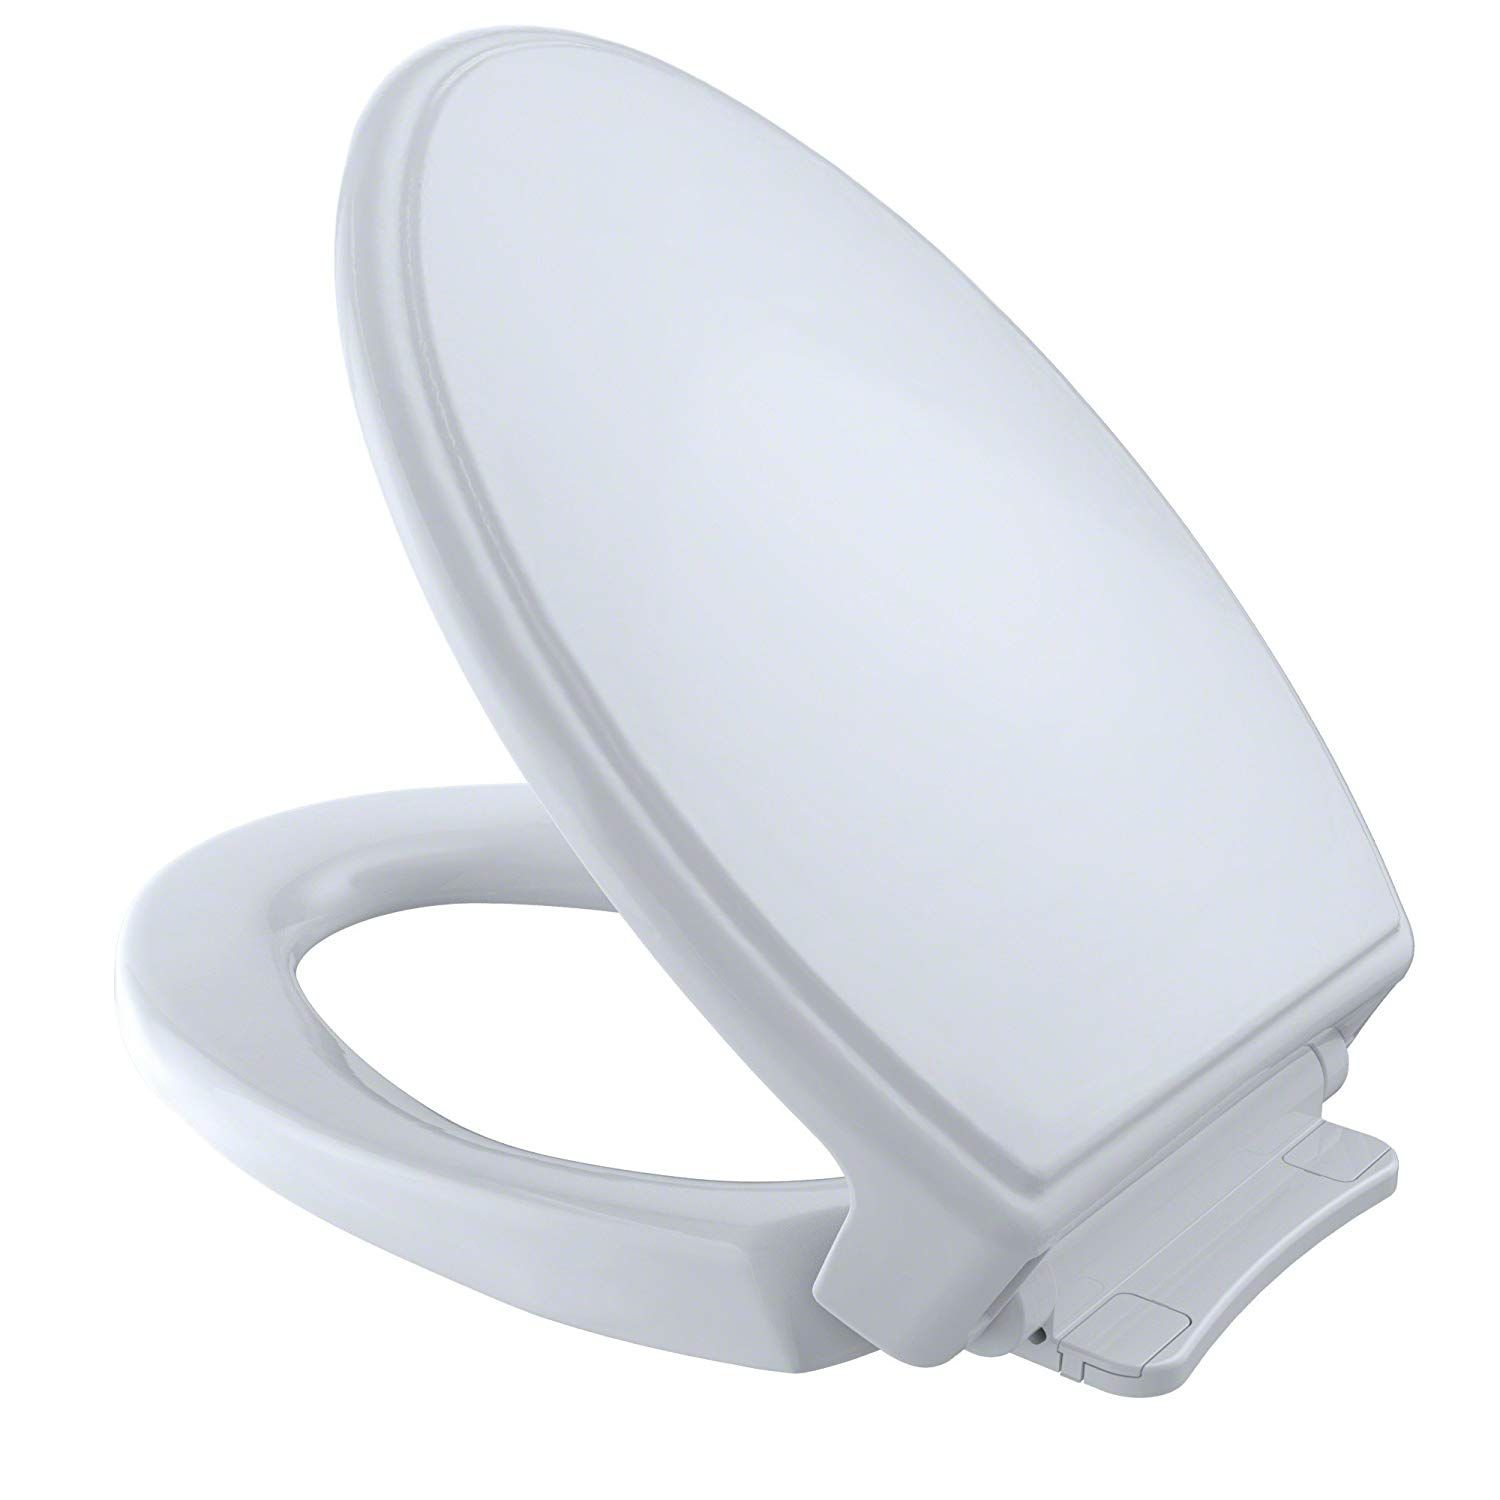 Toto Ss154 01 Traditional Softclose Elongated Toilet Seat Cotton White Find Out More About The Great Produ Elongated Toilet Seat Toilet Seat Plastic Hinges